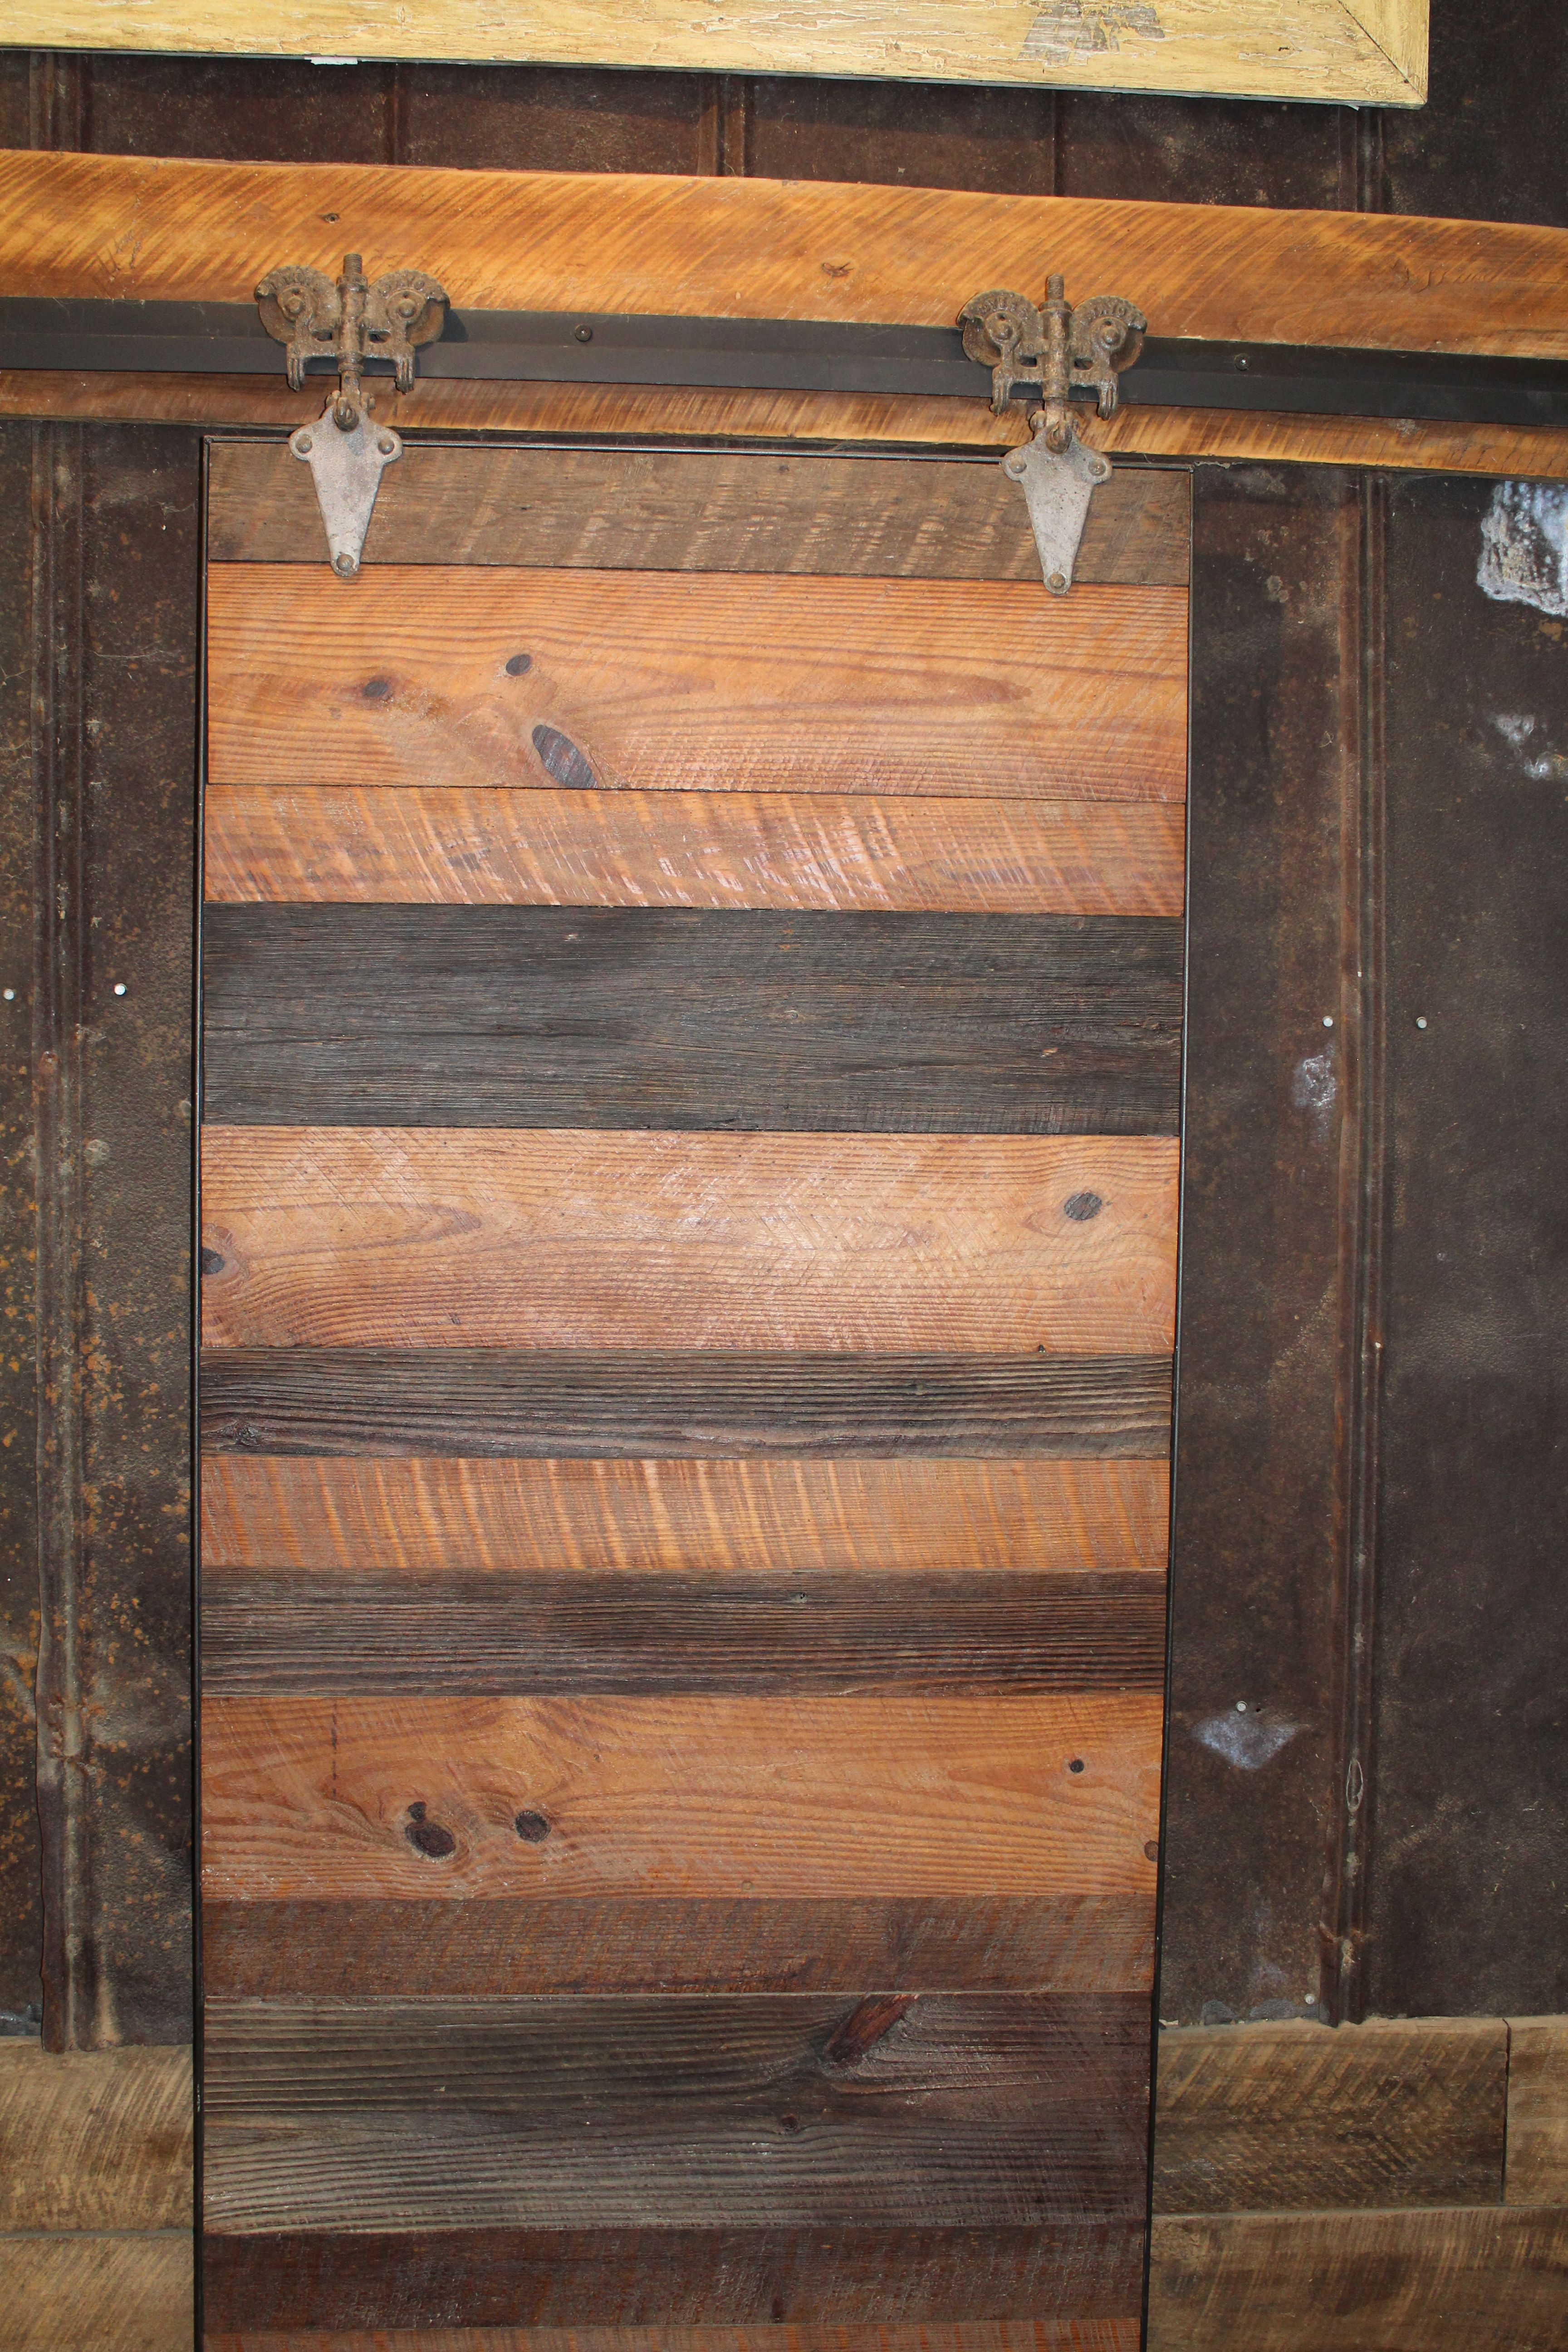 Handmade Barn Door On Display And For Sale In Our Shop Right Now